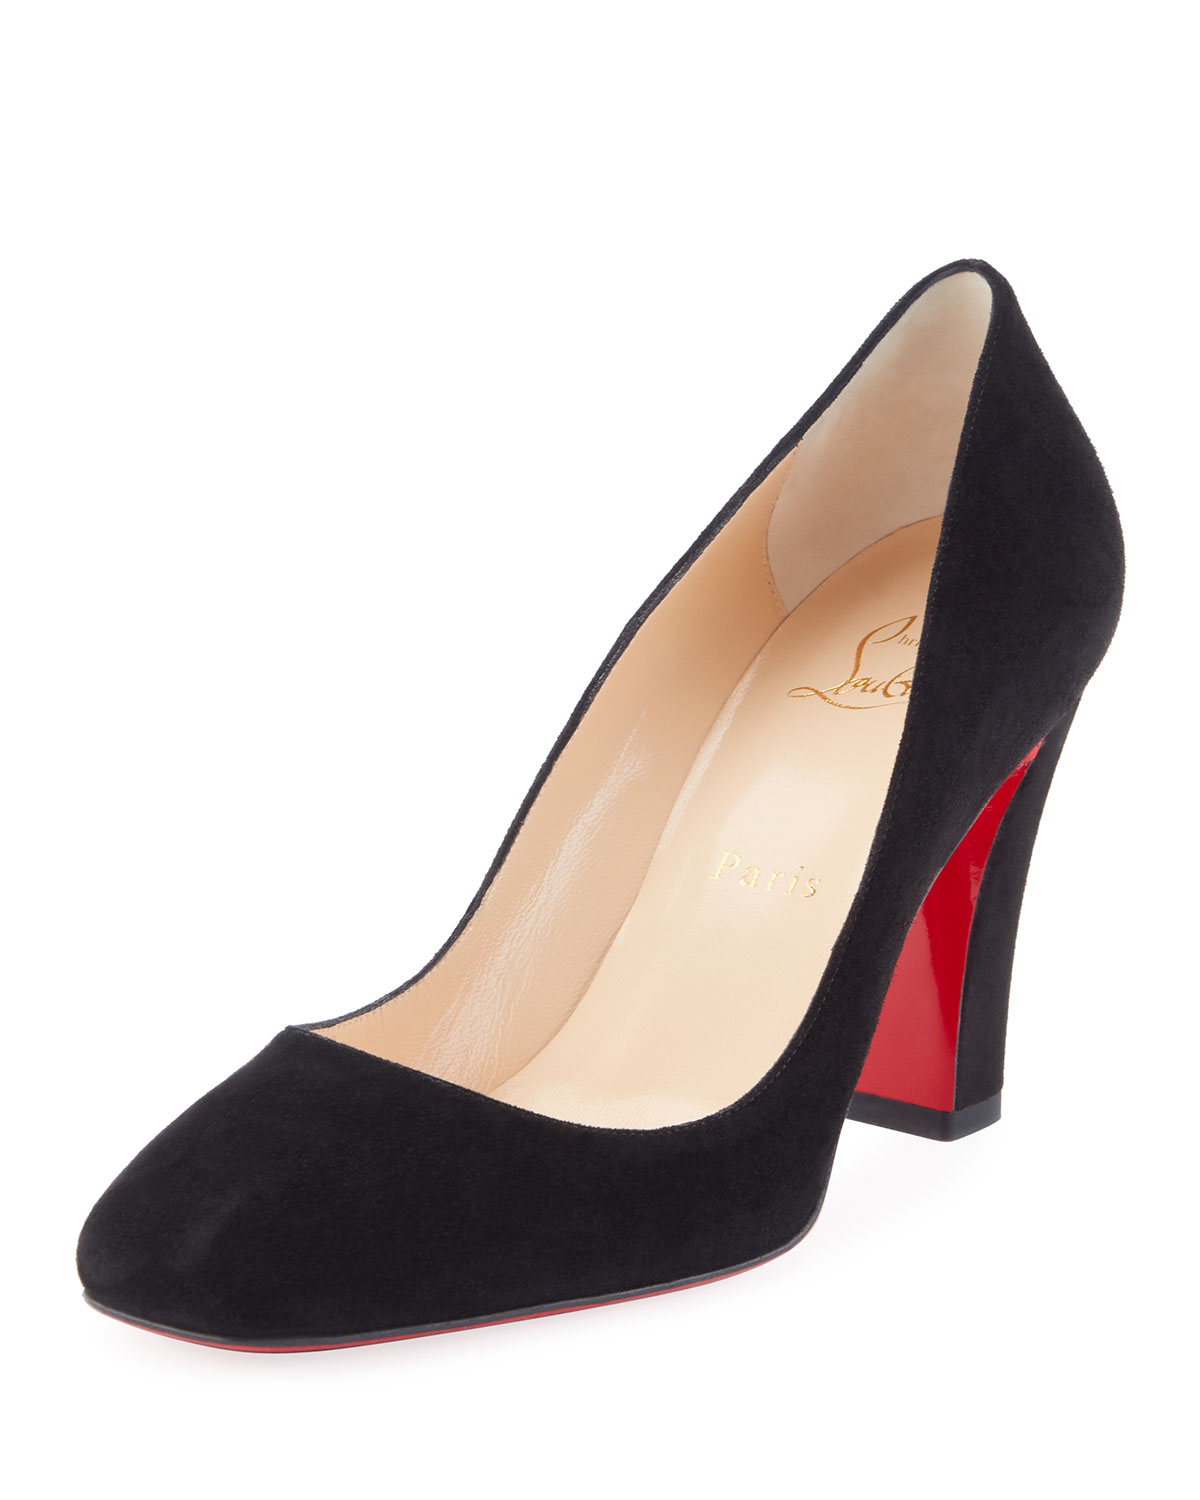 official photos 11cd0 18411 Viva Suede 85mm Red Sole Pumps, Black